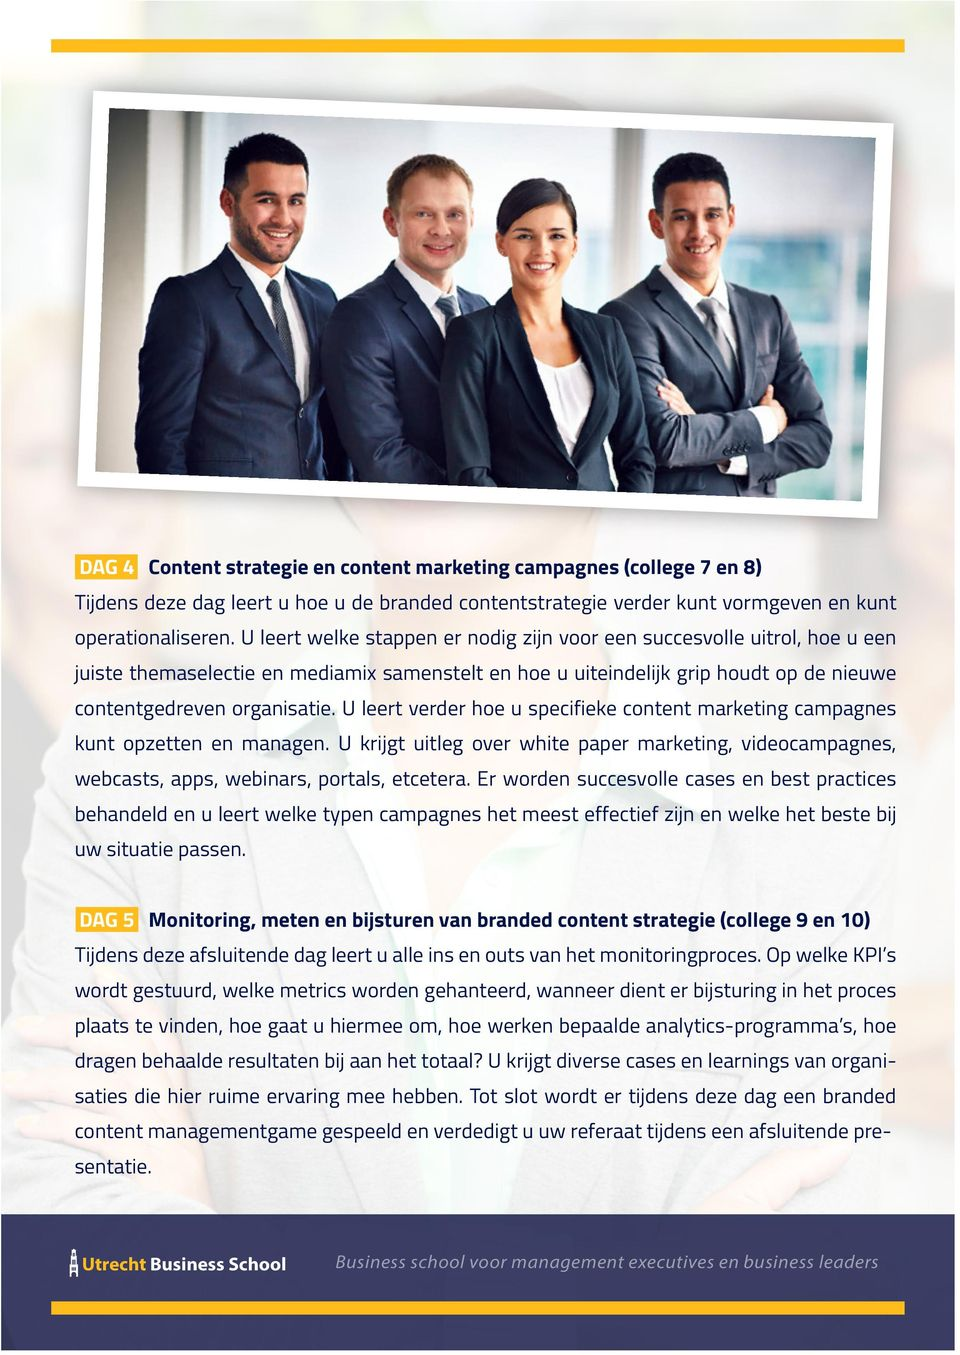 U leert verder hoe u specifieke content marketing campagnes kunt opzetten en managen. U krijgt uitleg over white paper marketing, videocampagnes, webcasts, apps, webinars, portals, etcetera.